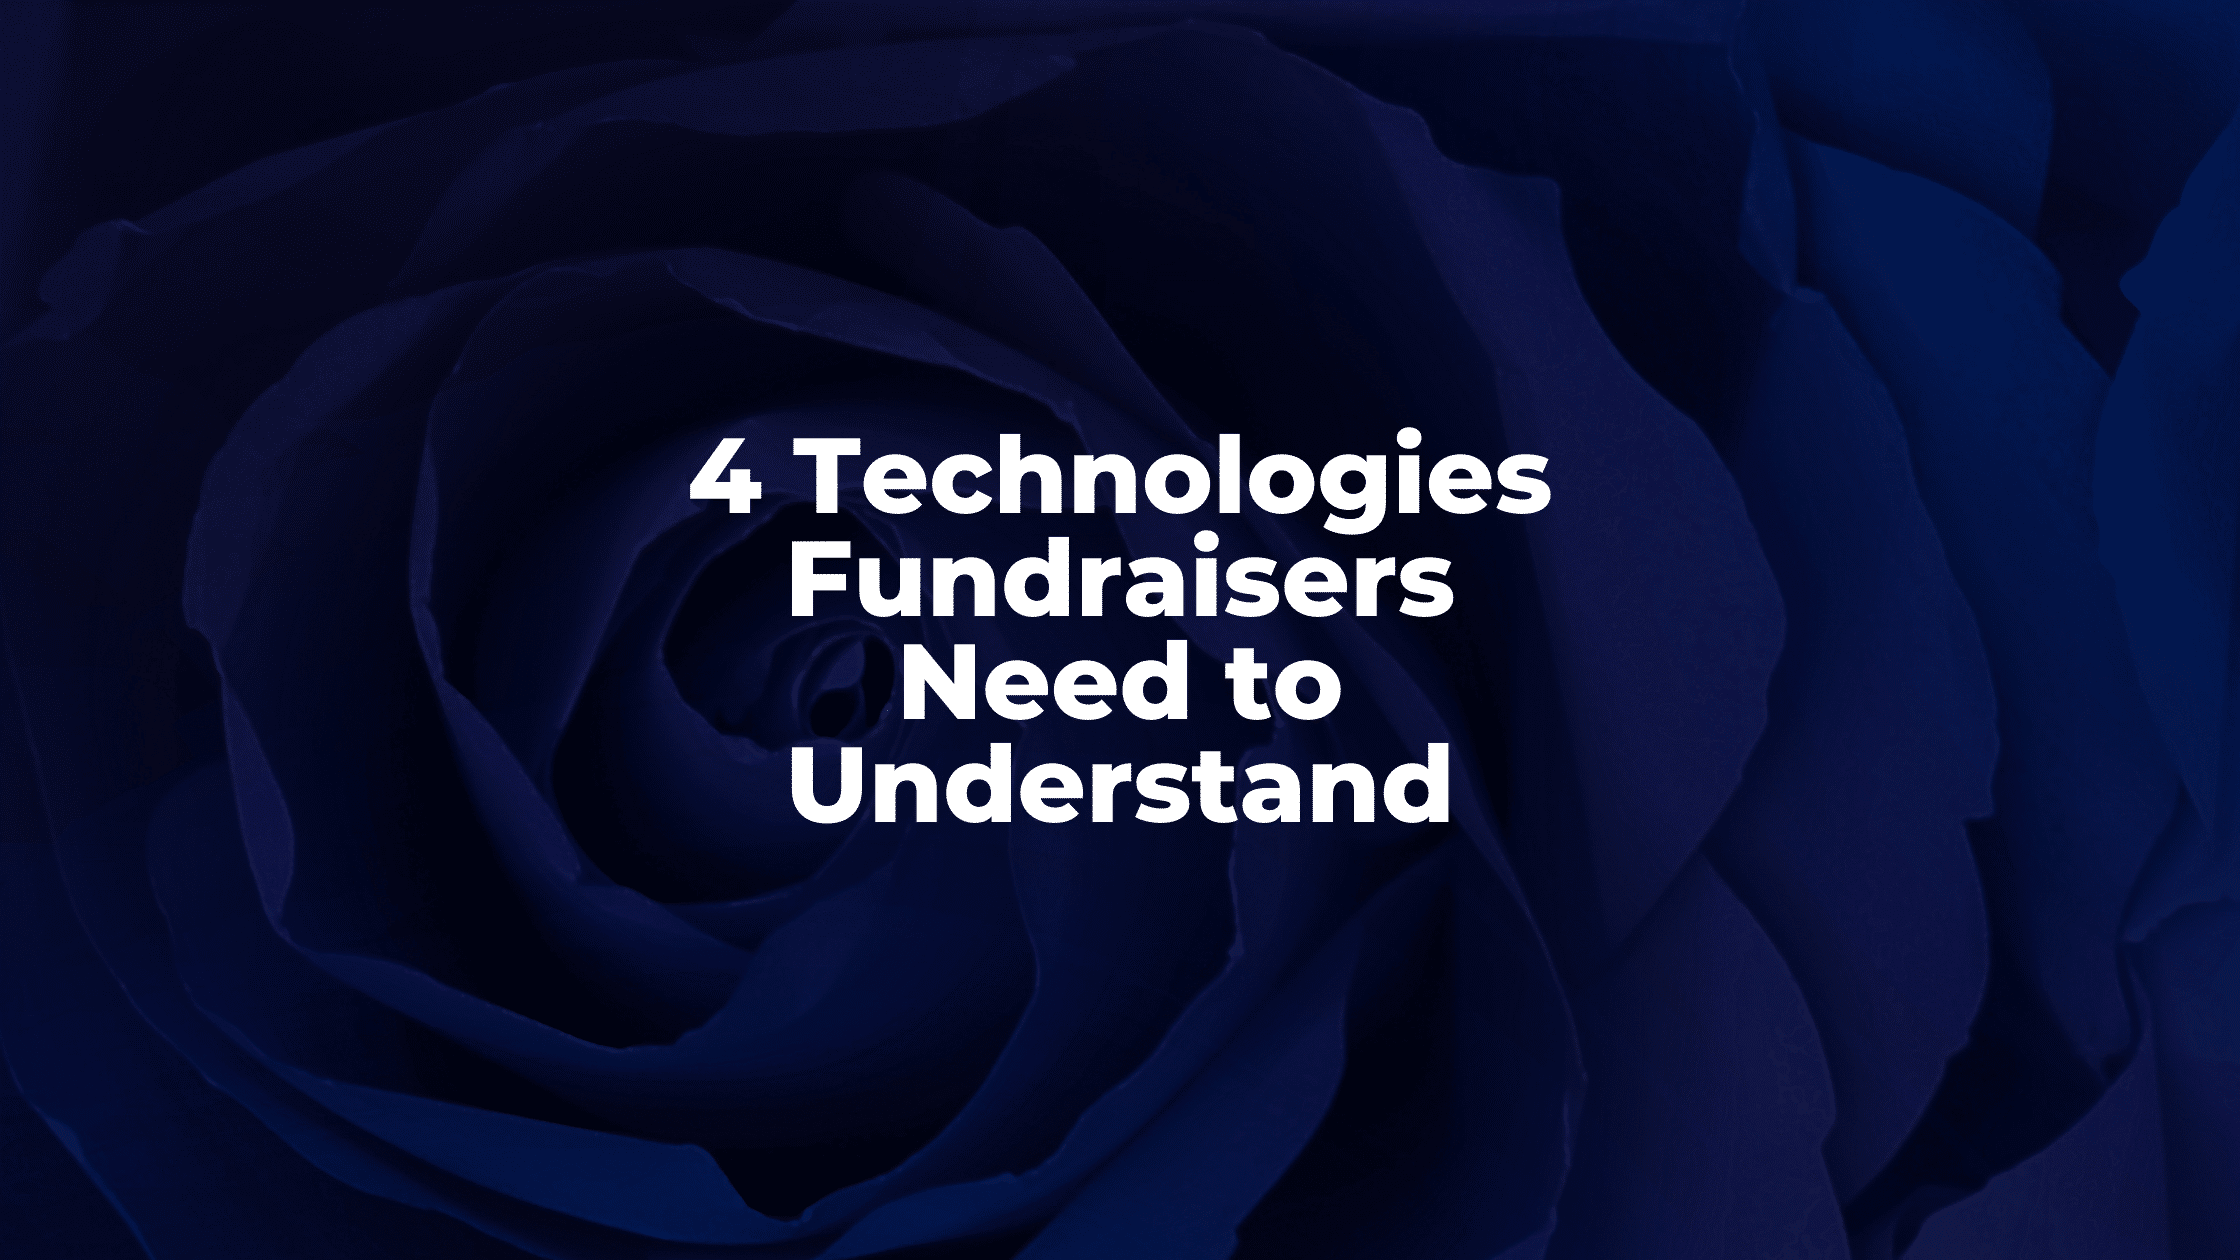 4 Innovative Technologies Fundraisers Need to Understand